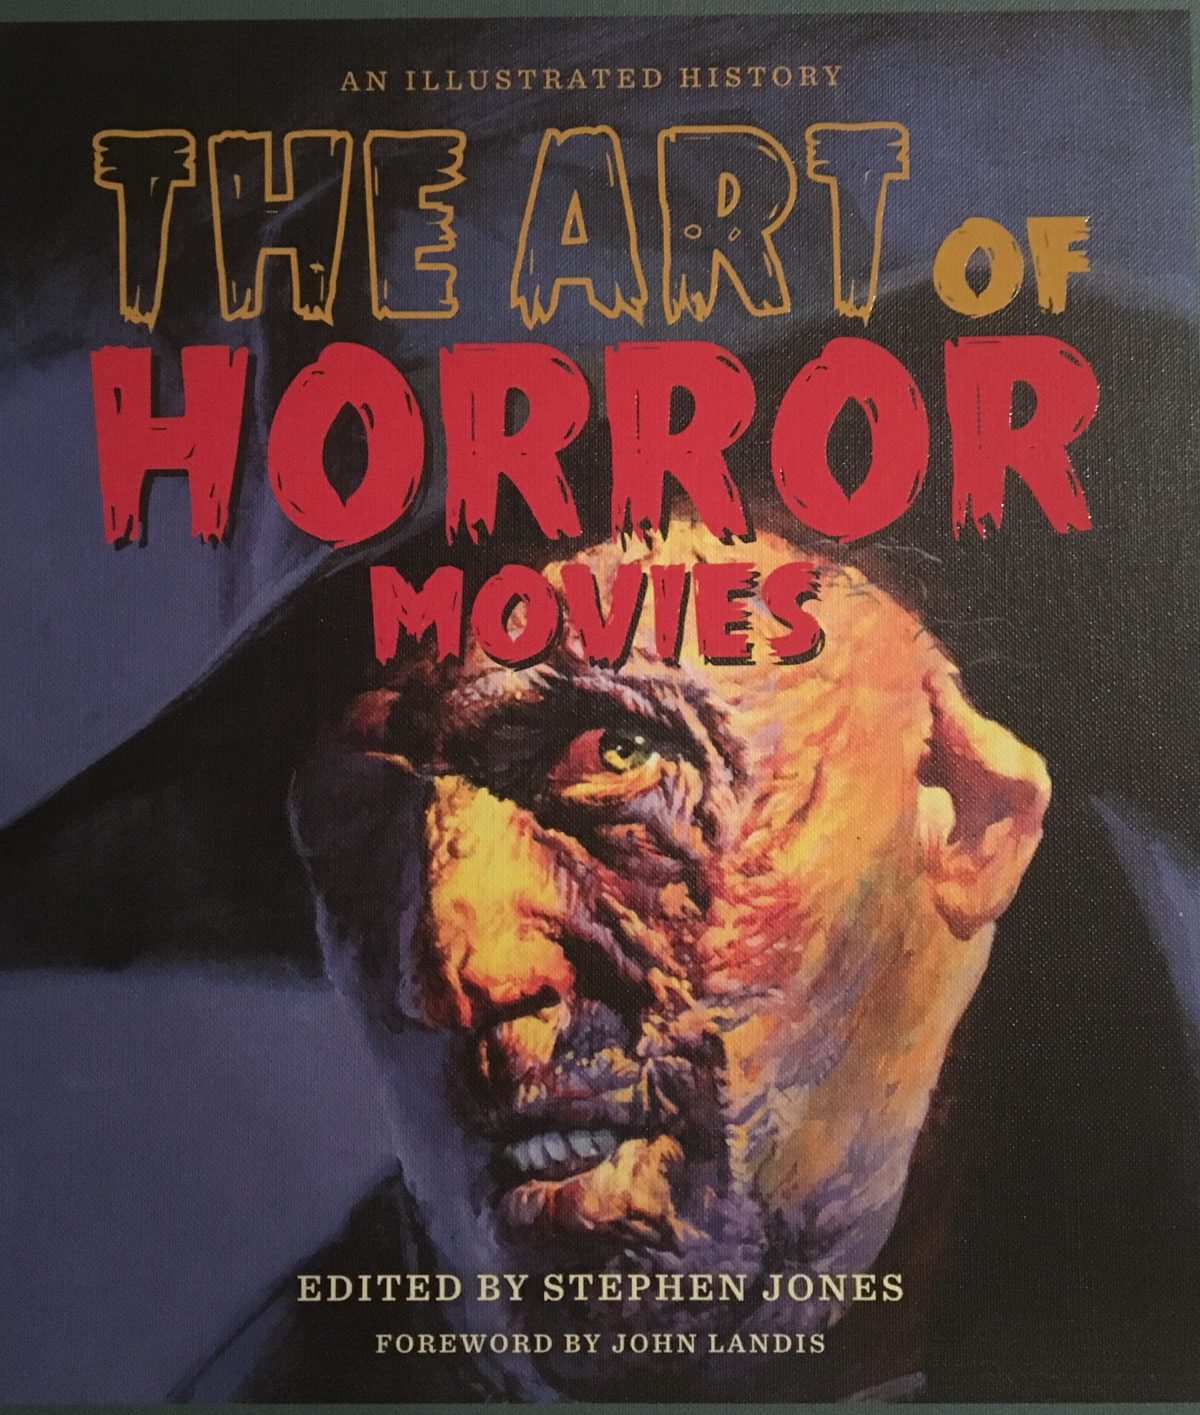 The Art of Horror: An Illustrated History | Vincent Price's legacy lives on in this colourful tome